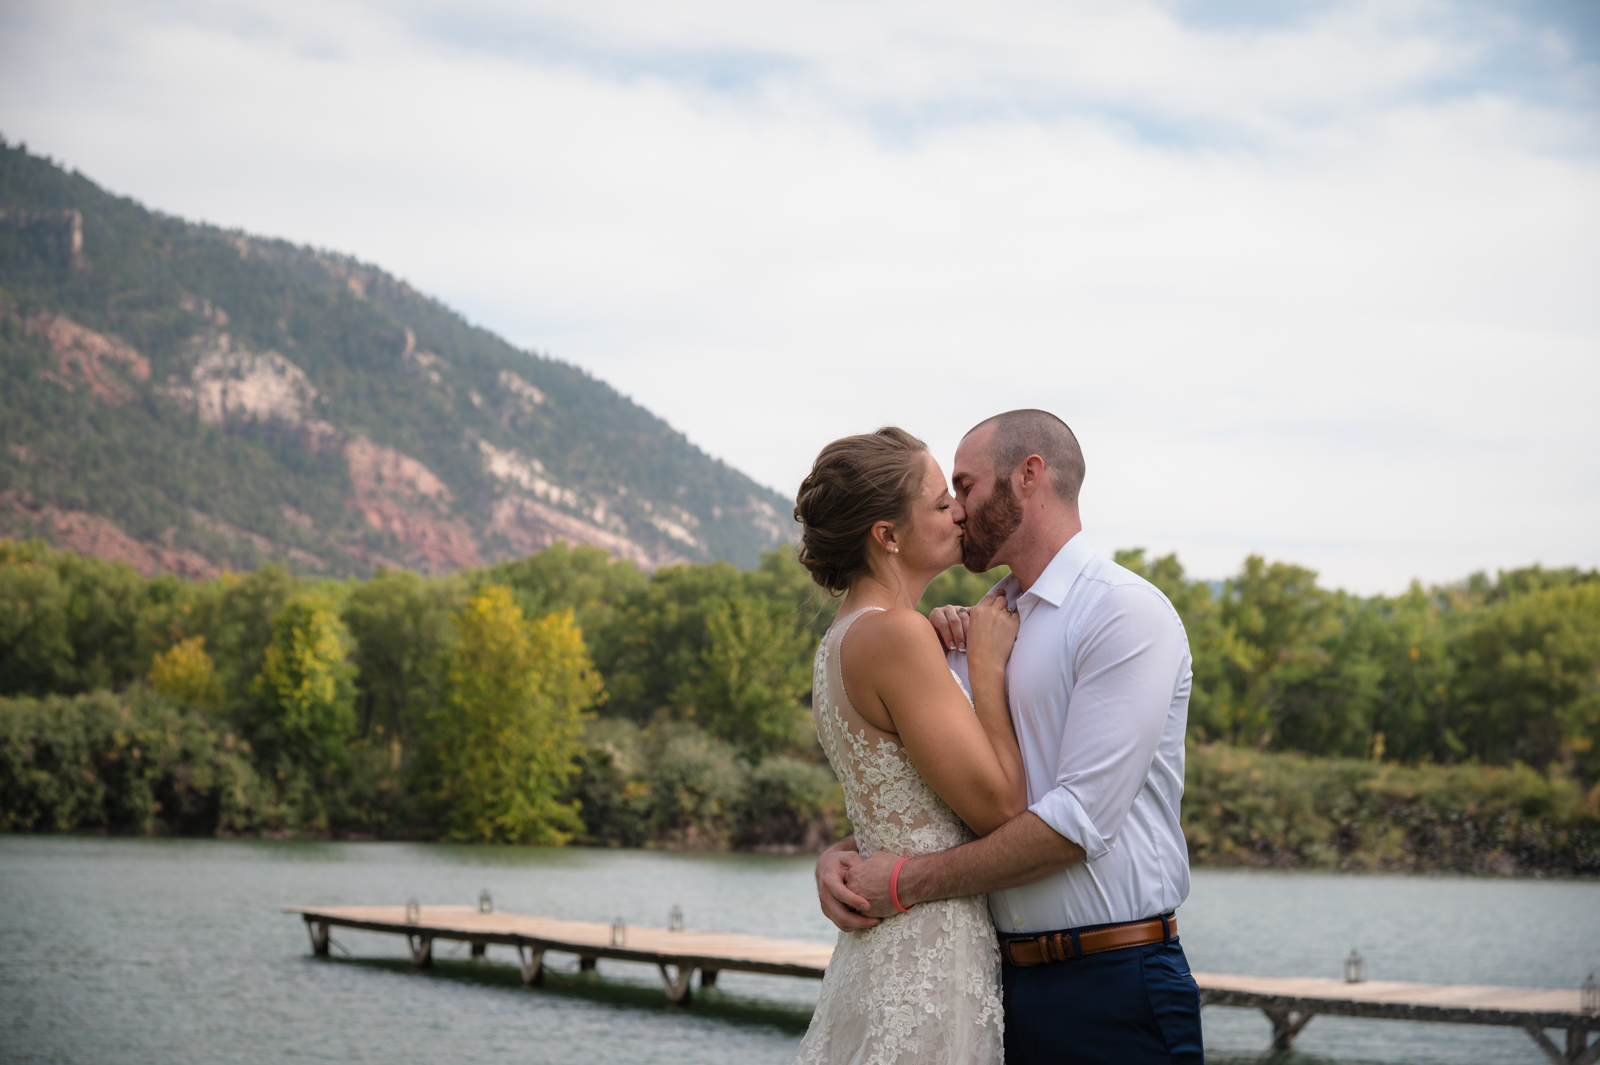 Liz & Ethan's Wedding at River Bend Ranch Durango Colorado